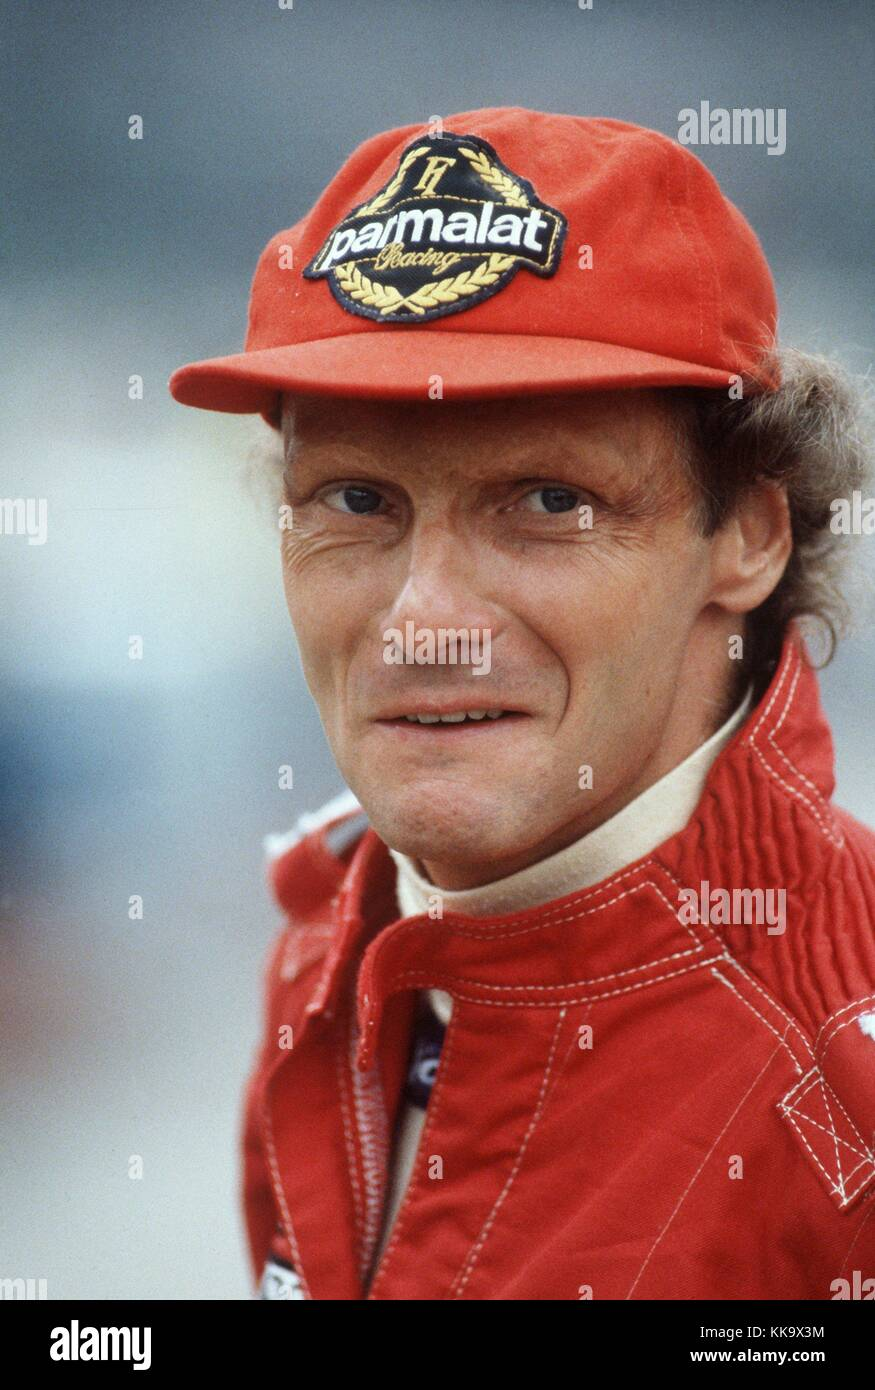 niki lauda - photo #36